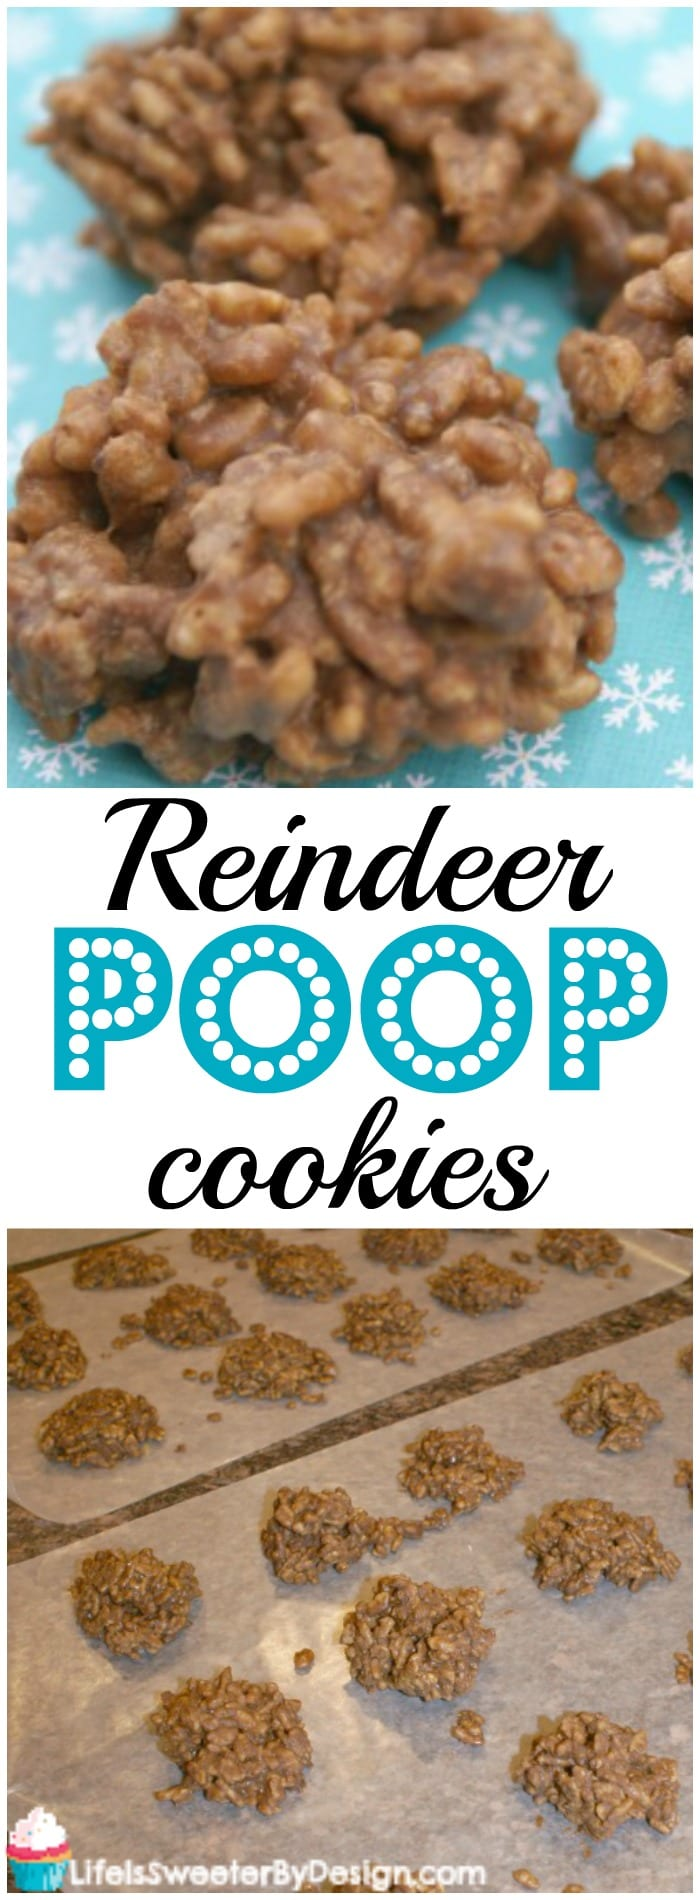 Reindeer Poop Cookies are a simple no bake cookie to make, yummy to eat and a great kid cooking activity for Christmas! These fun Christmas cookies are a hit with kids and adults!